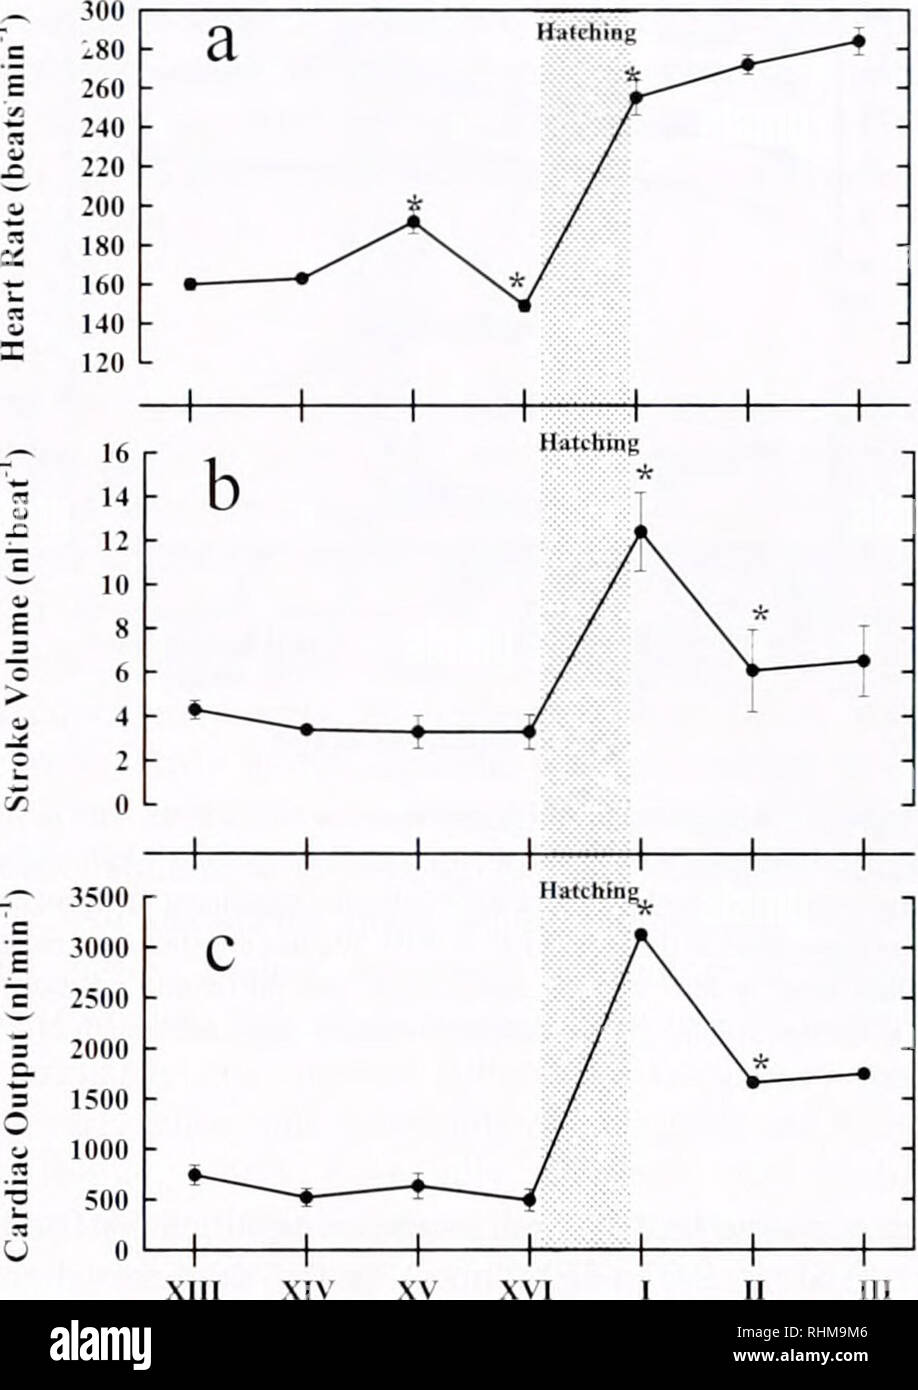 hight resolution of crayfish heart physiological development 81 embryonic response to normoxic and hyperoxic exposure with significance at the level of p 0 05